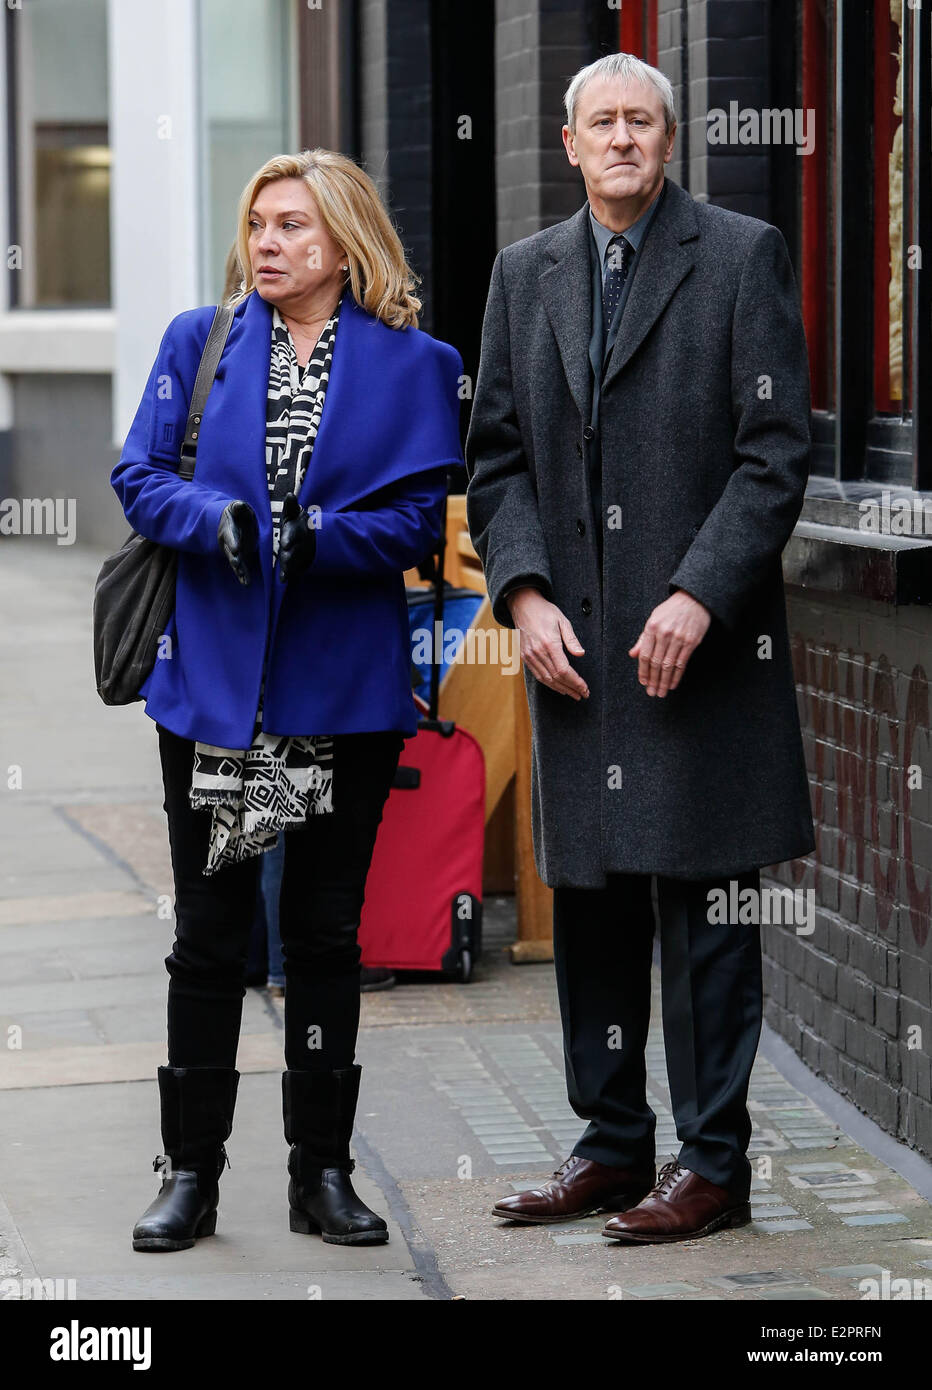 Nicholas Lyndhurst And Amanda Redman Filming For Bbc Series New Stock Photo Alamy